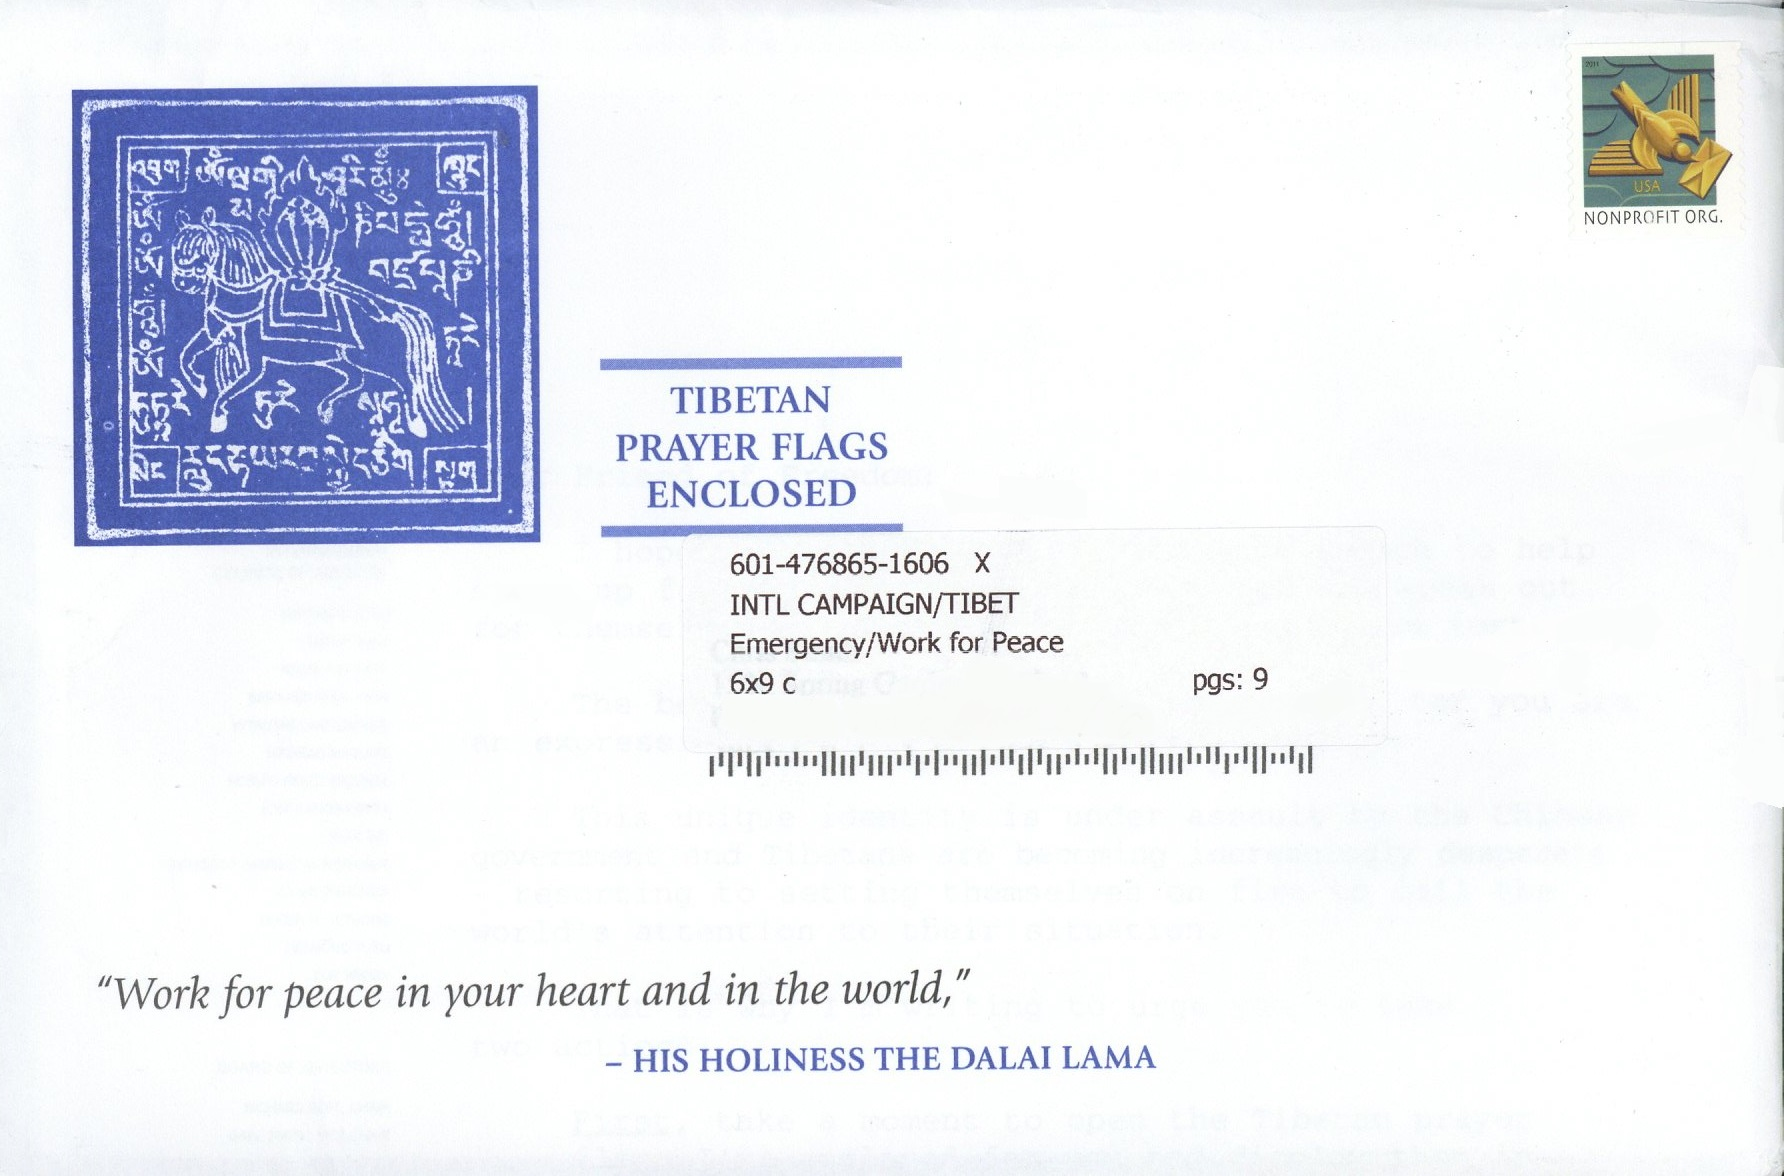 Anatomy of a Direct Mail Control: International Campaign for Tibet ...